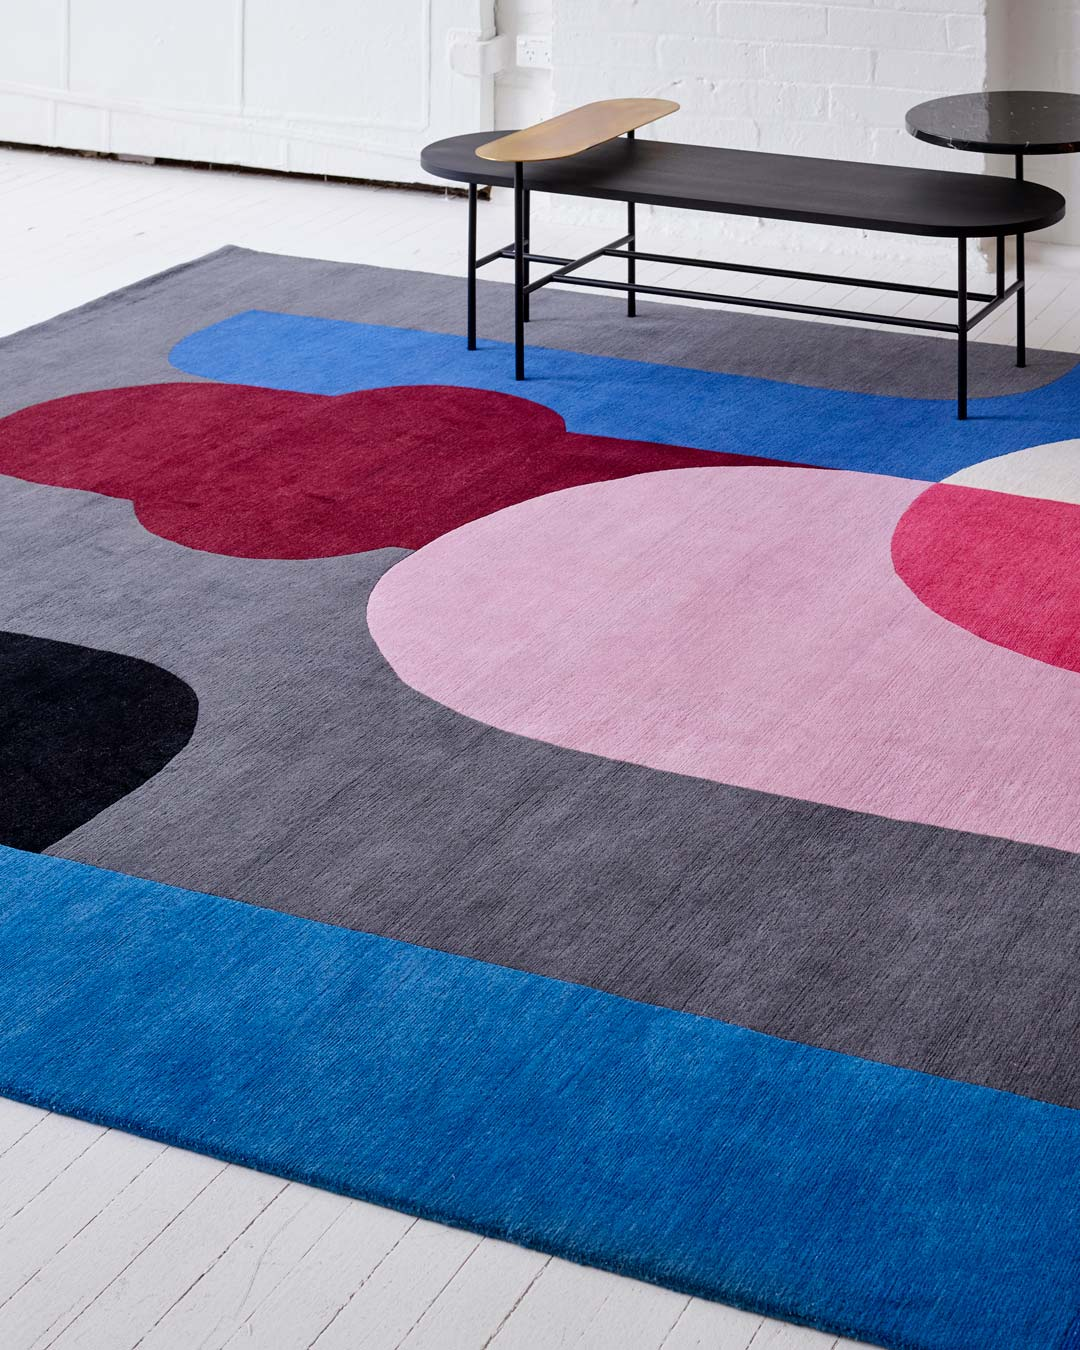 Close up image of geometric Twilight rug by Stephen Ormandy